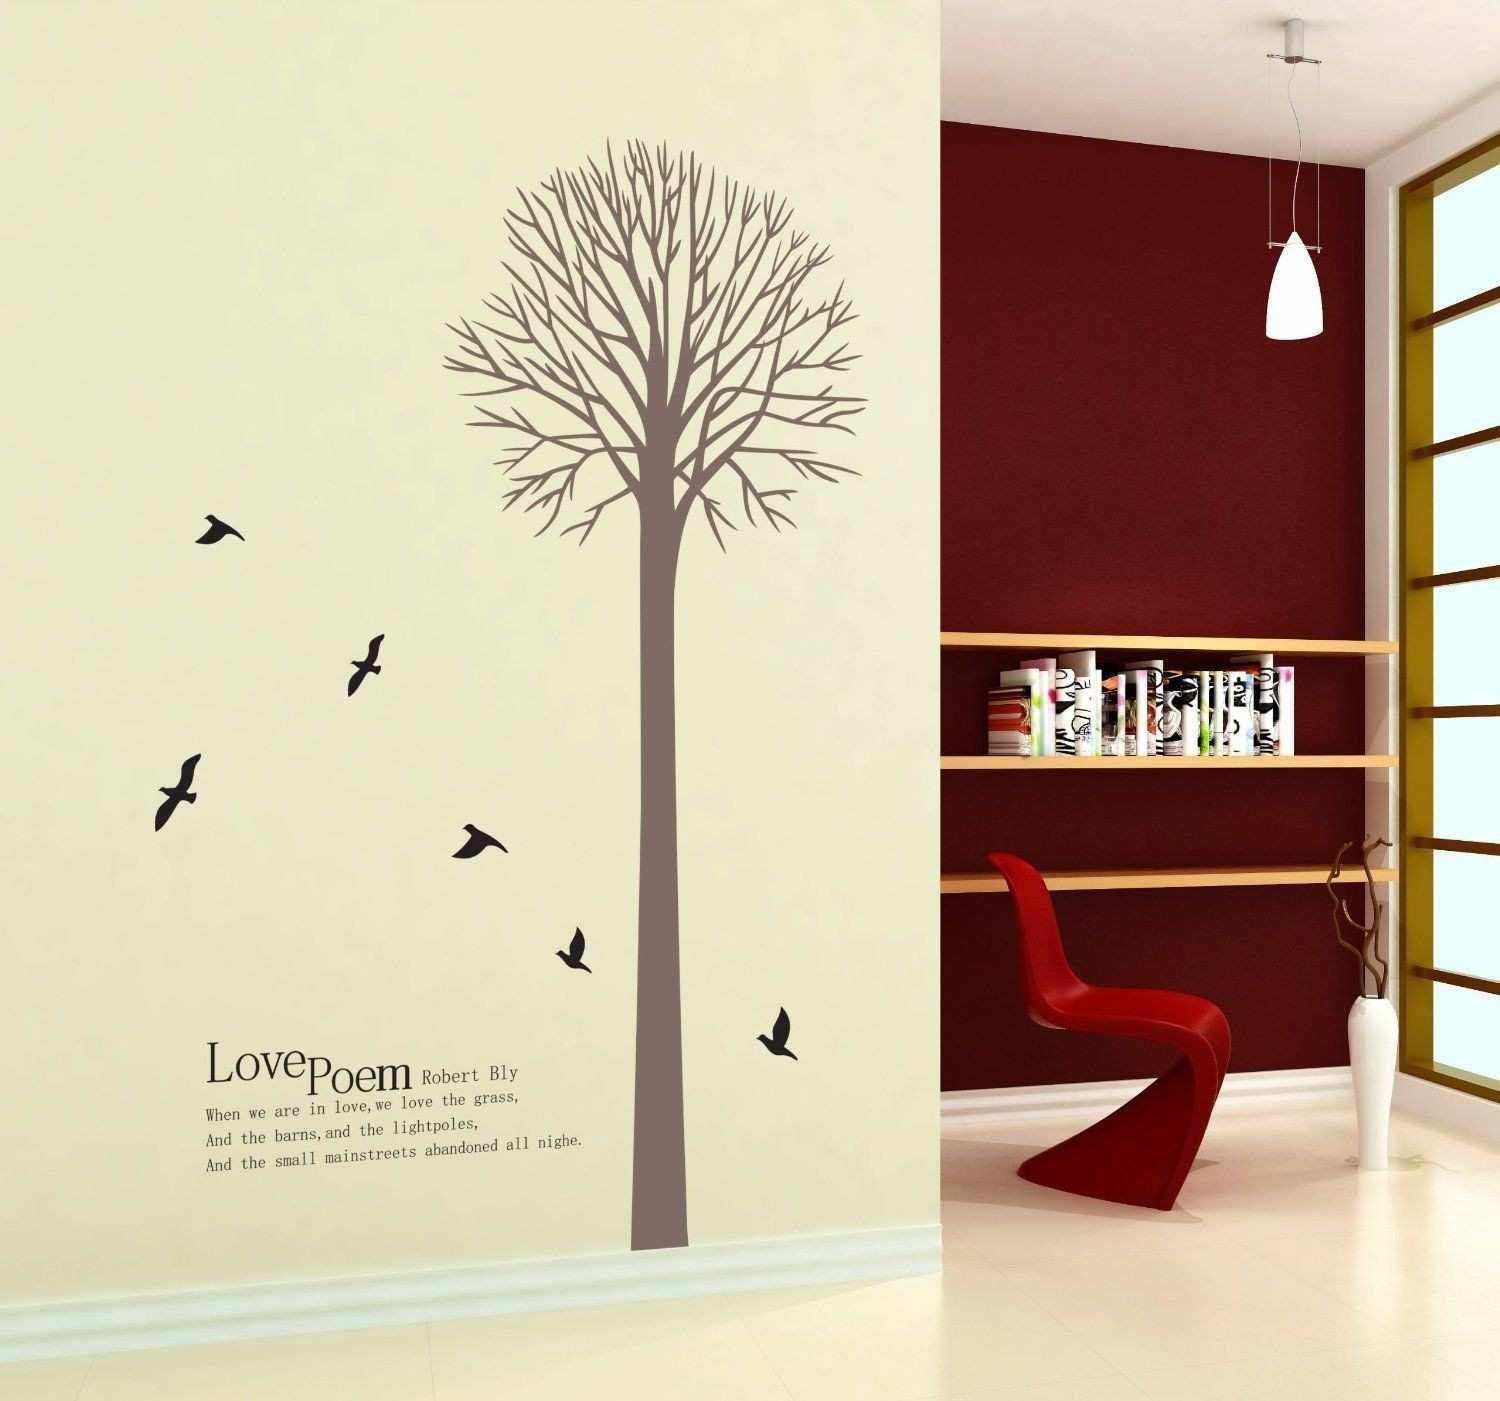 New Design Love Poem by Robert Bly Wall Decal Tall Tree with Black